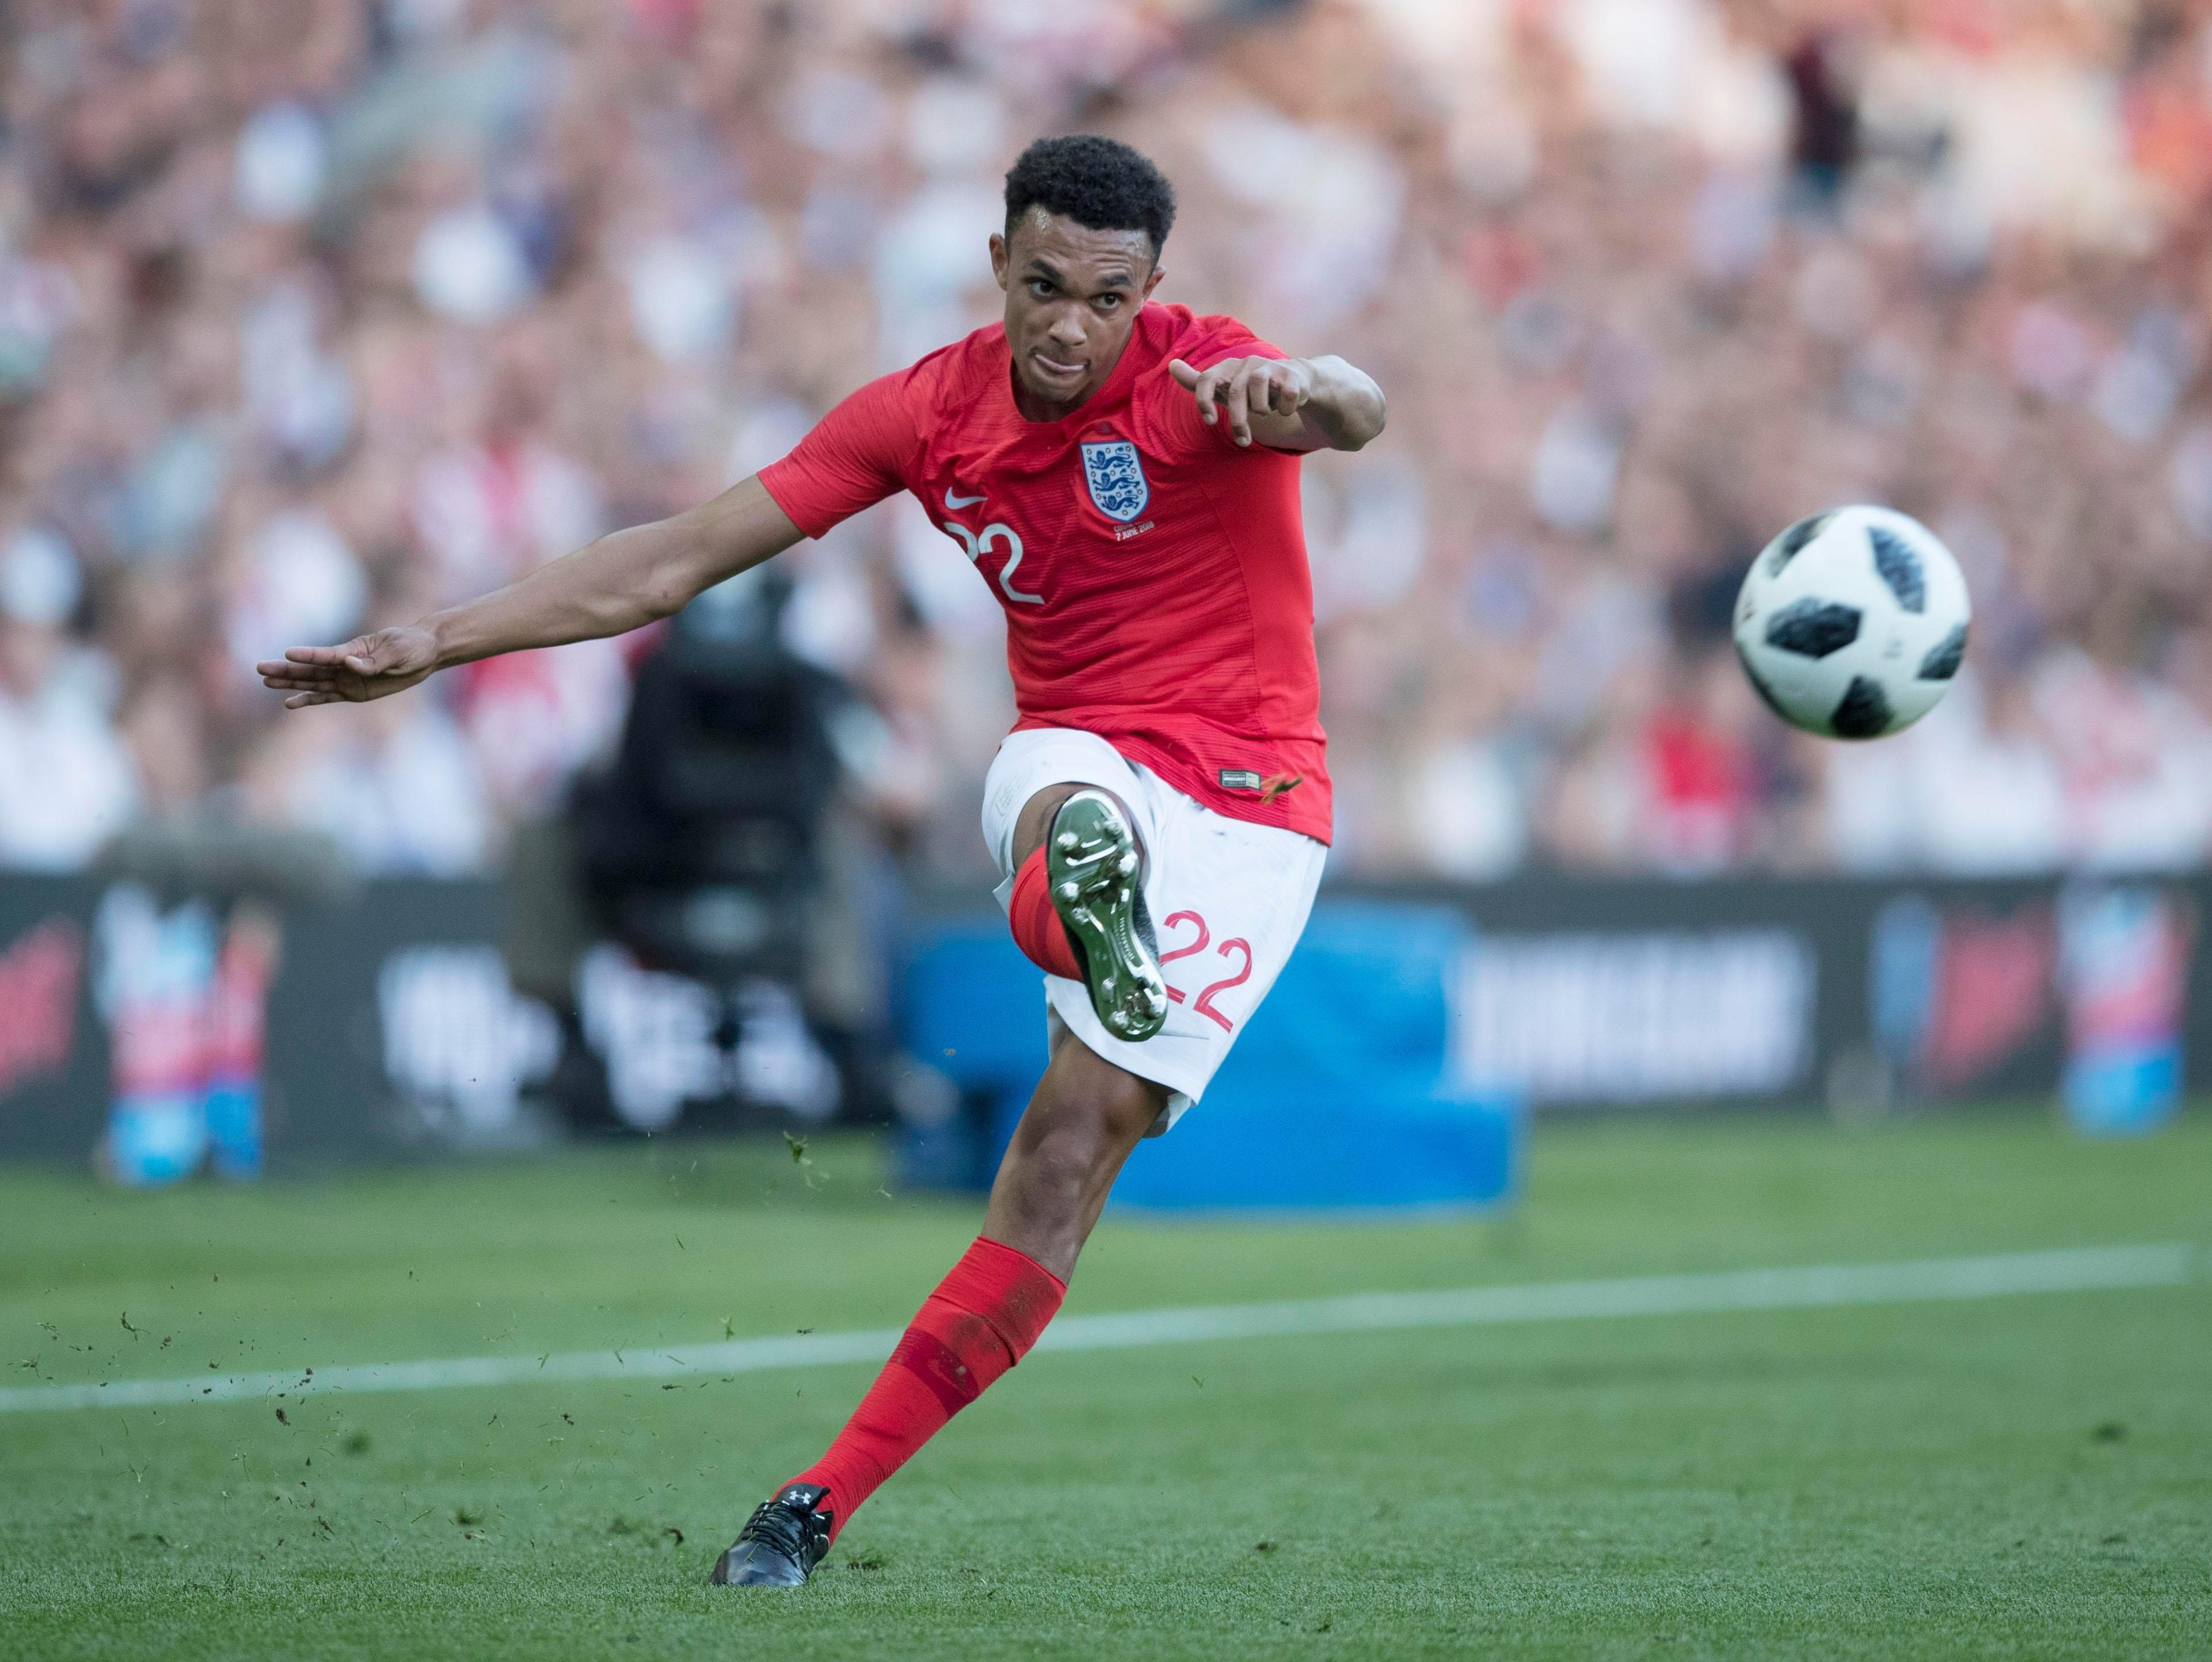 Trent Alexander-Arnold whips in a cross as he impressed on his senior debut for England